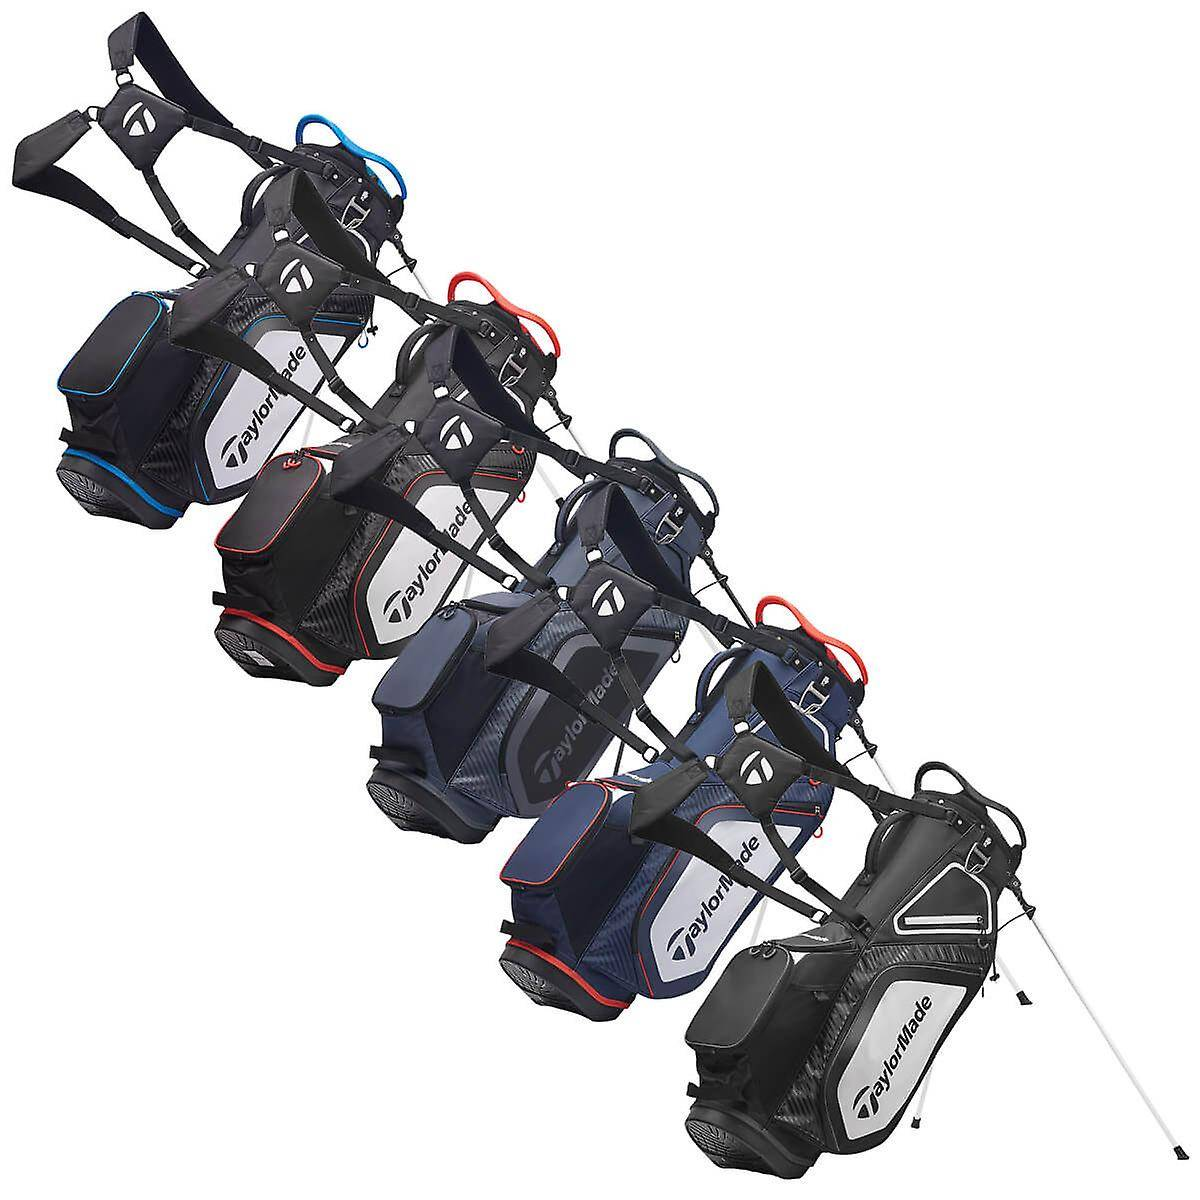 Taylor Made Taylormade Homme 2020 Pro Stand 8.0 Léger Résistant à l'eau 8 Way Golf Bag Marine/blanc/rouge One Size